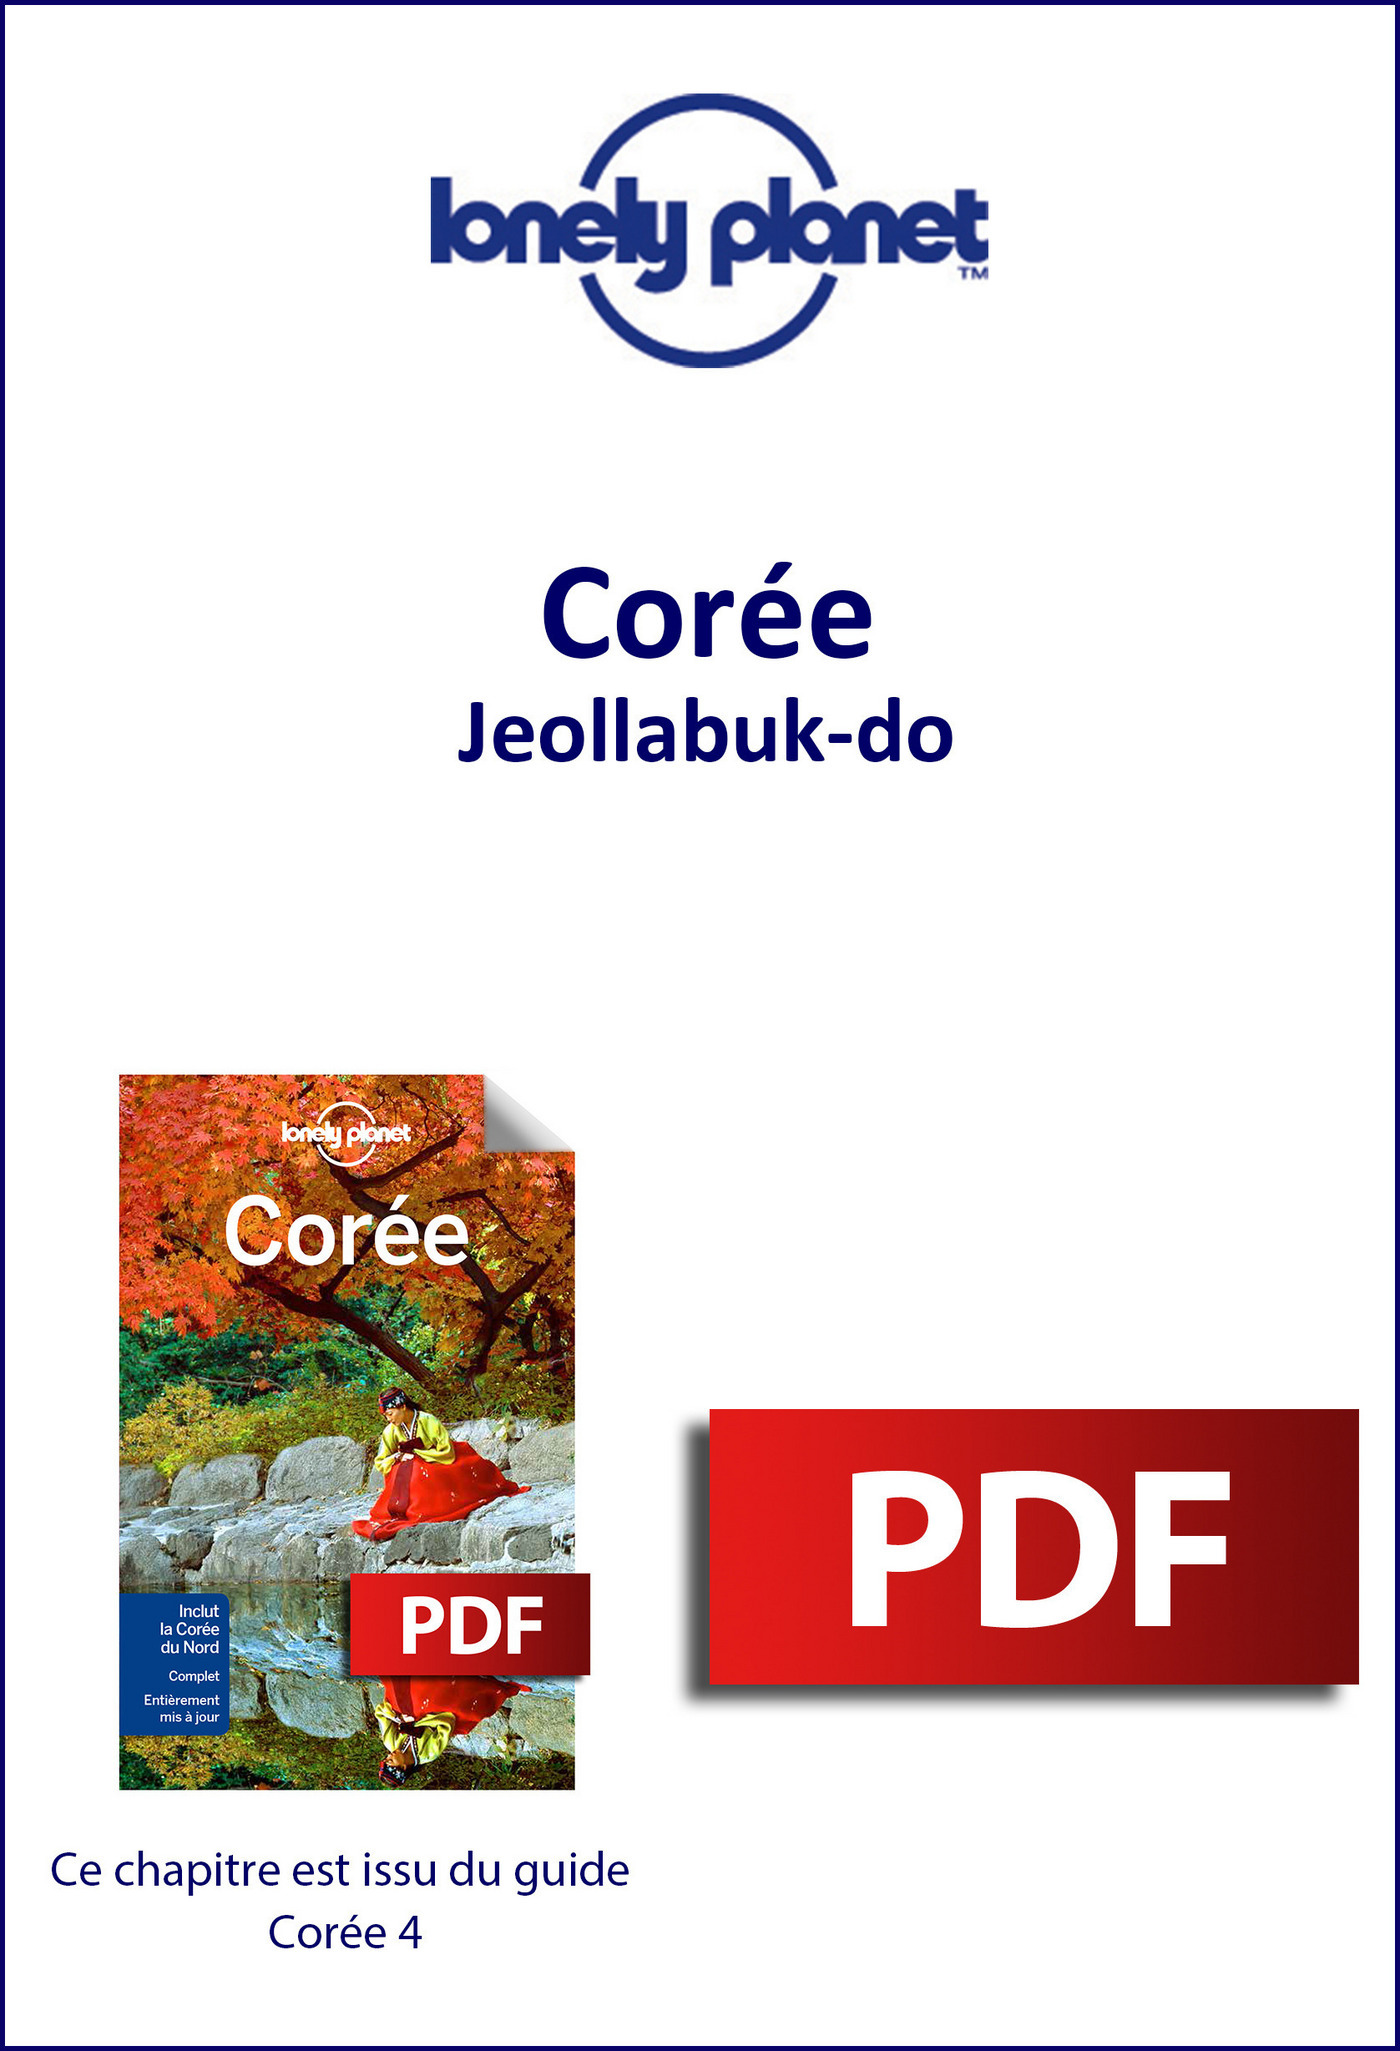 Corée - Jeollabuk-do